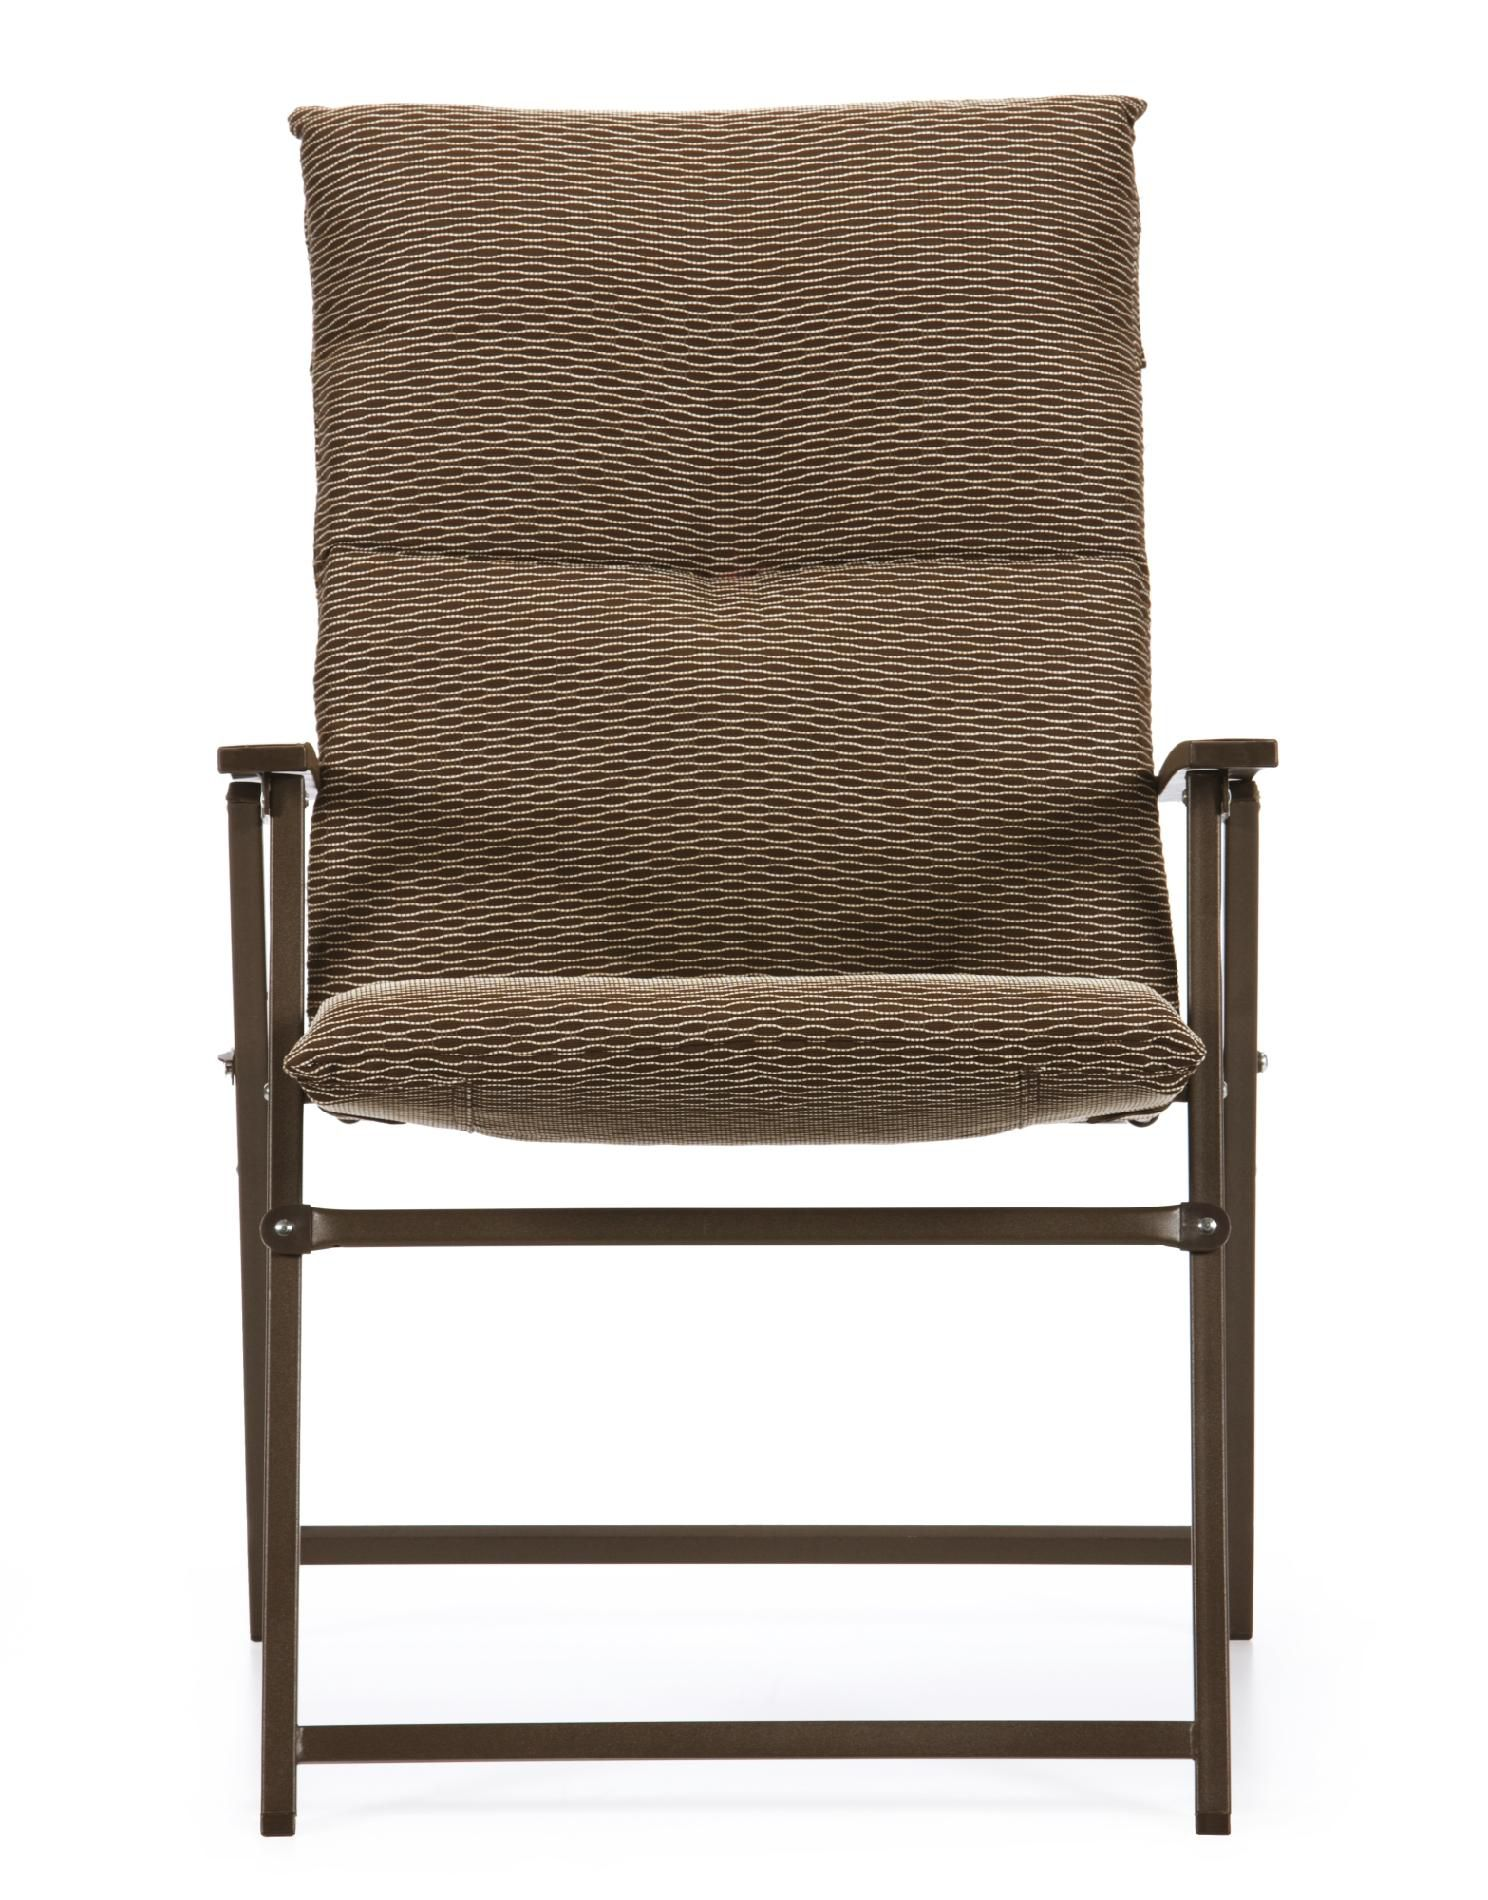 folding z chair duncan phyfe dining chairs for sale la boy outdoor alex padded